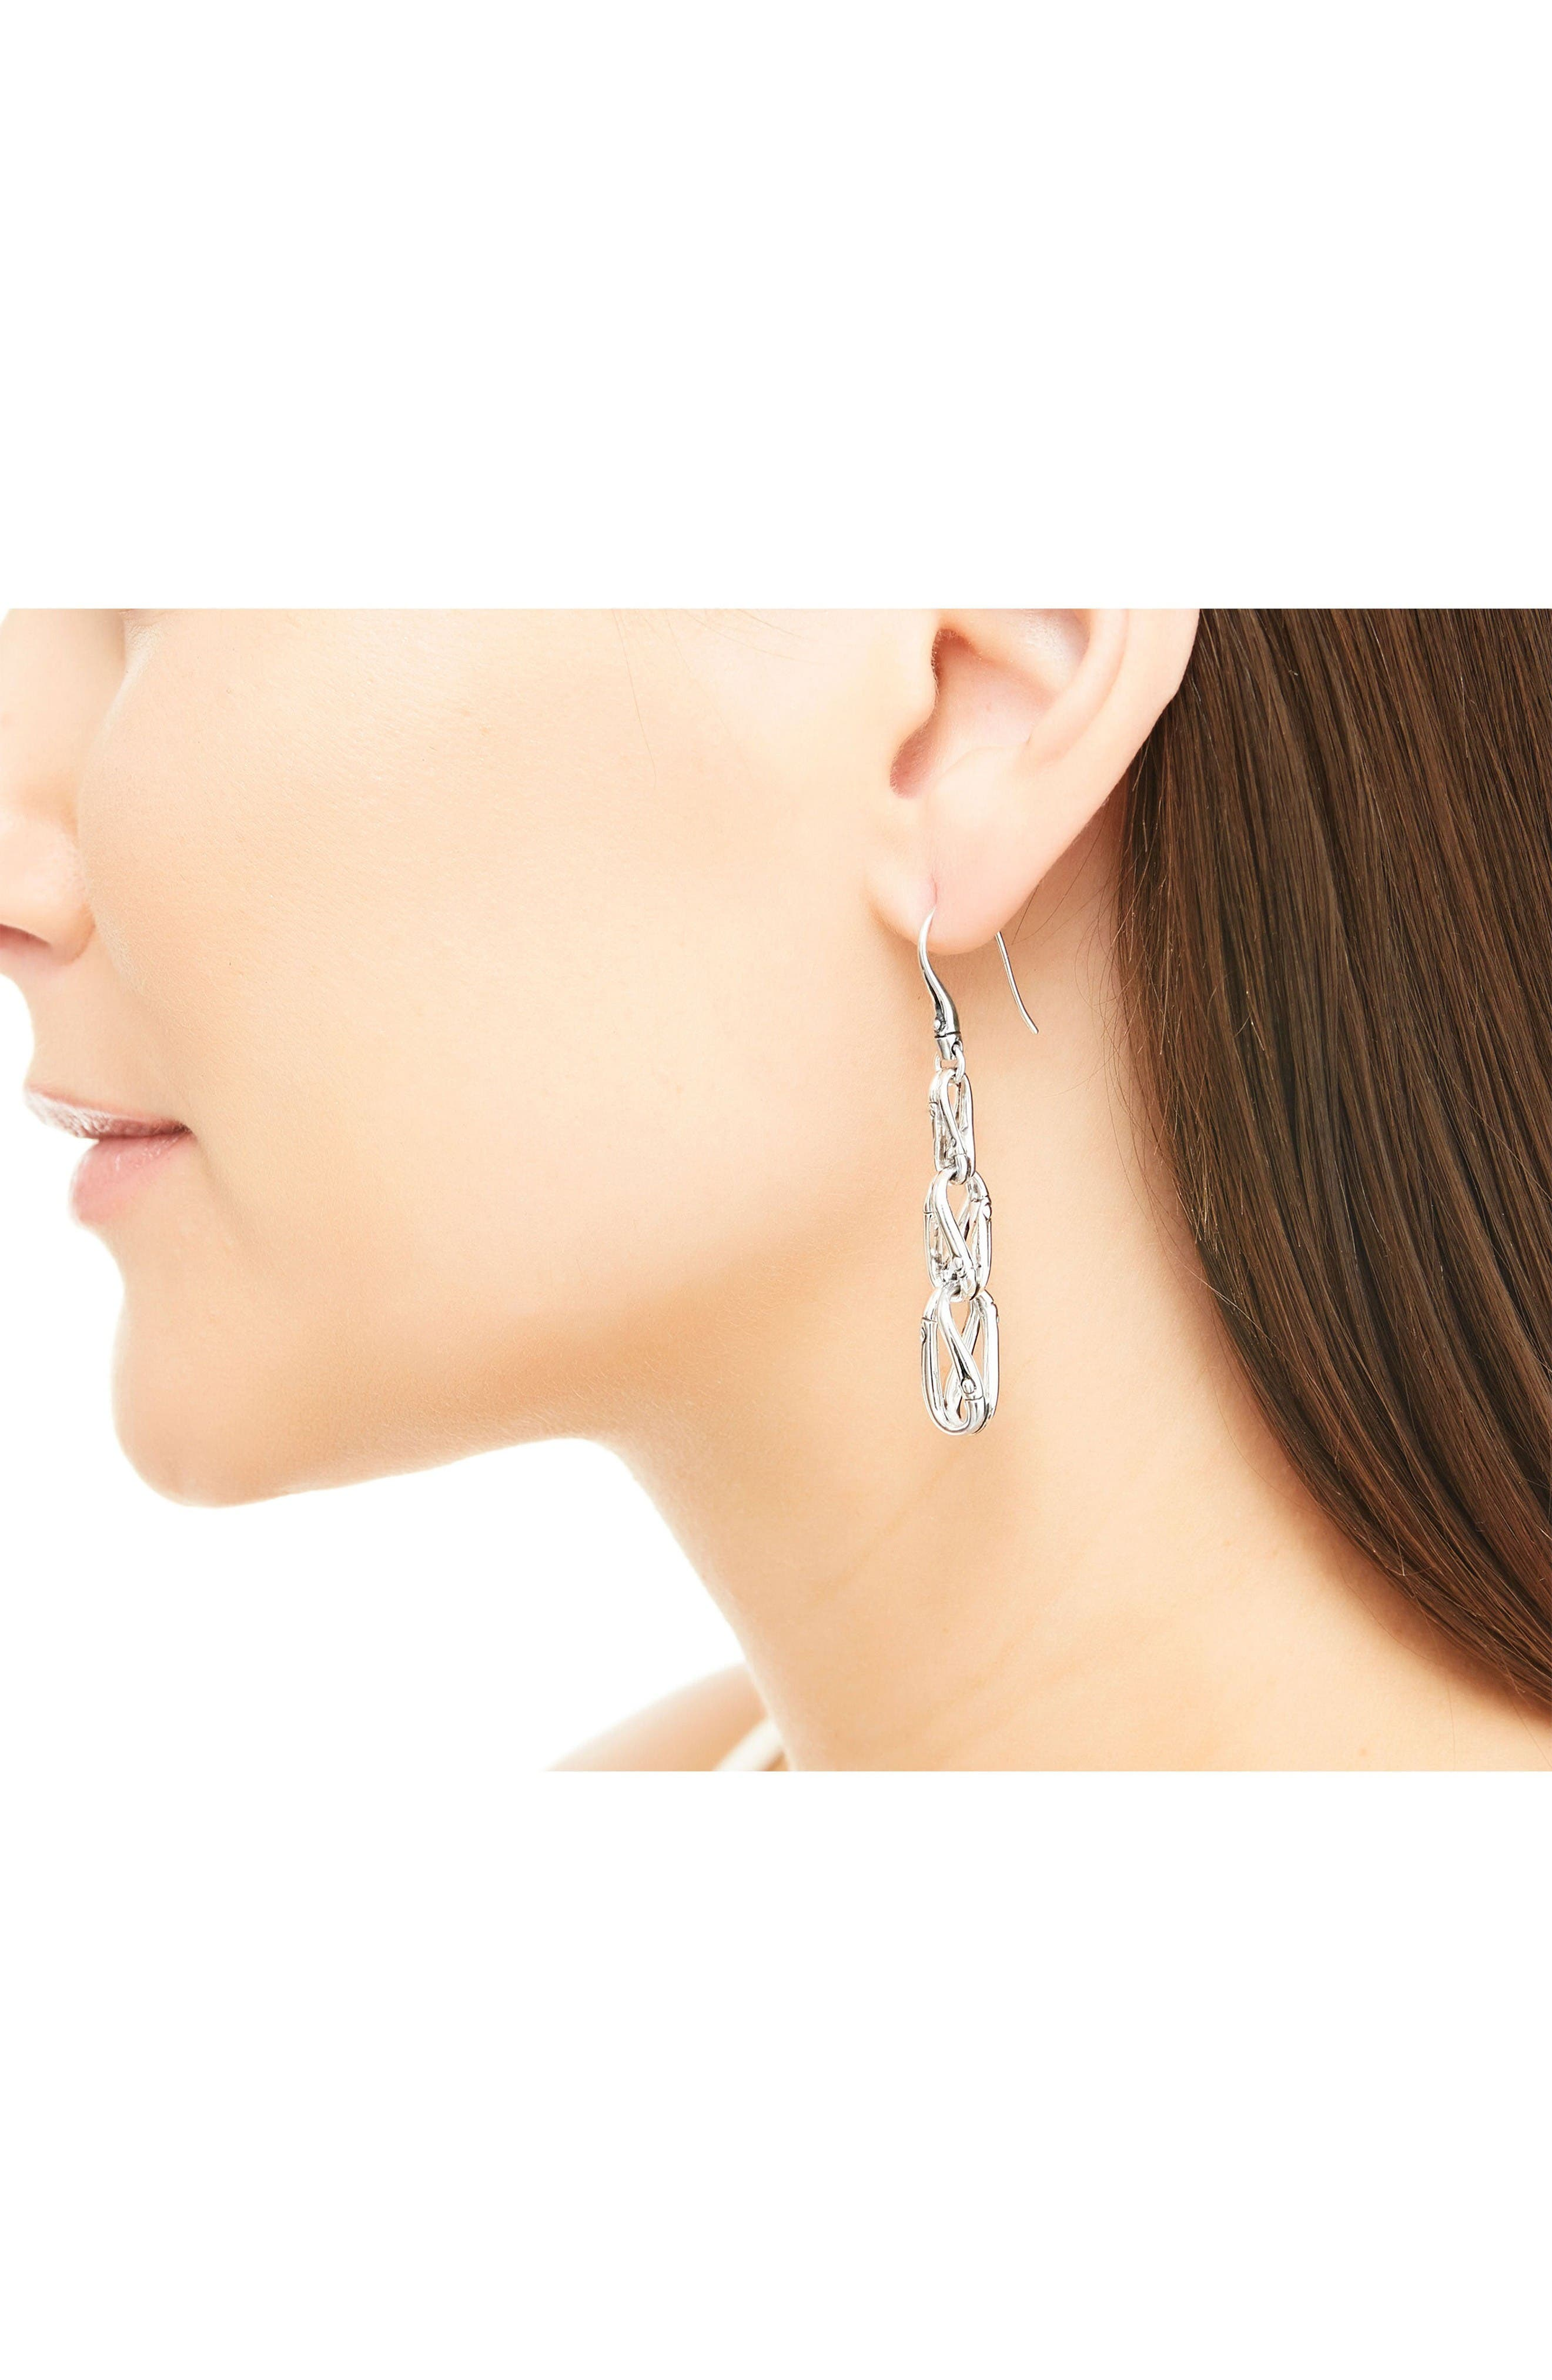 Silver Bamboo Drop Earrings,                             Alternate thumbnail 2, color,                             Silver